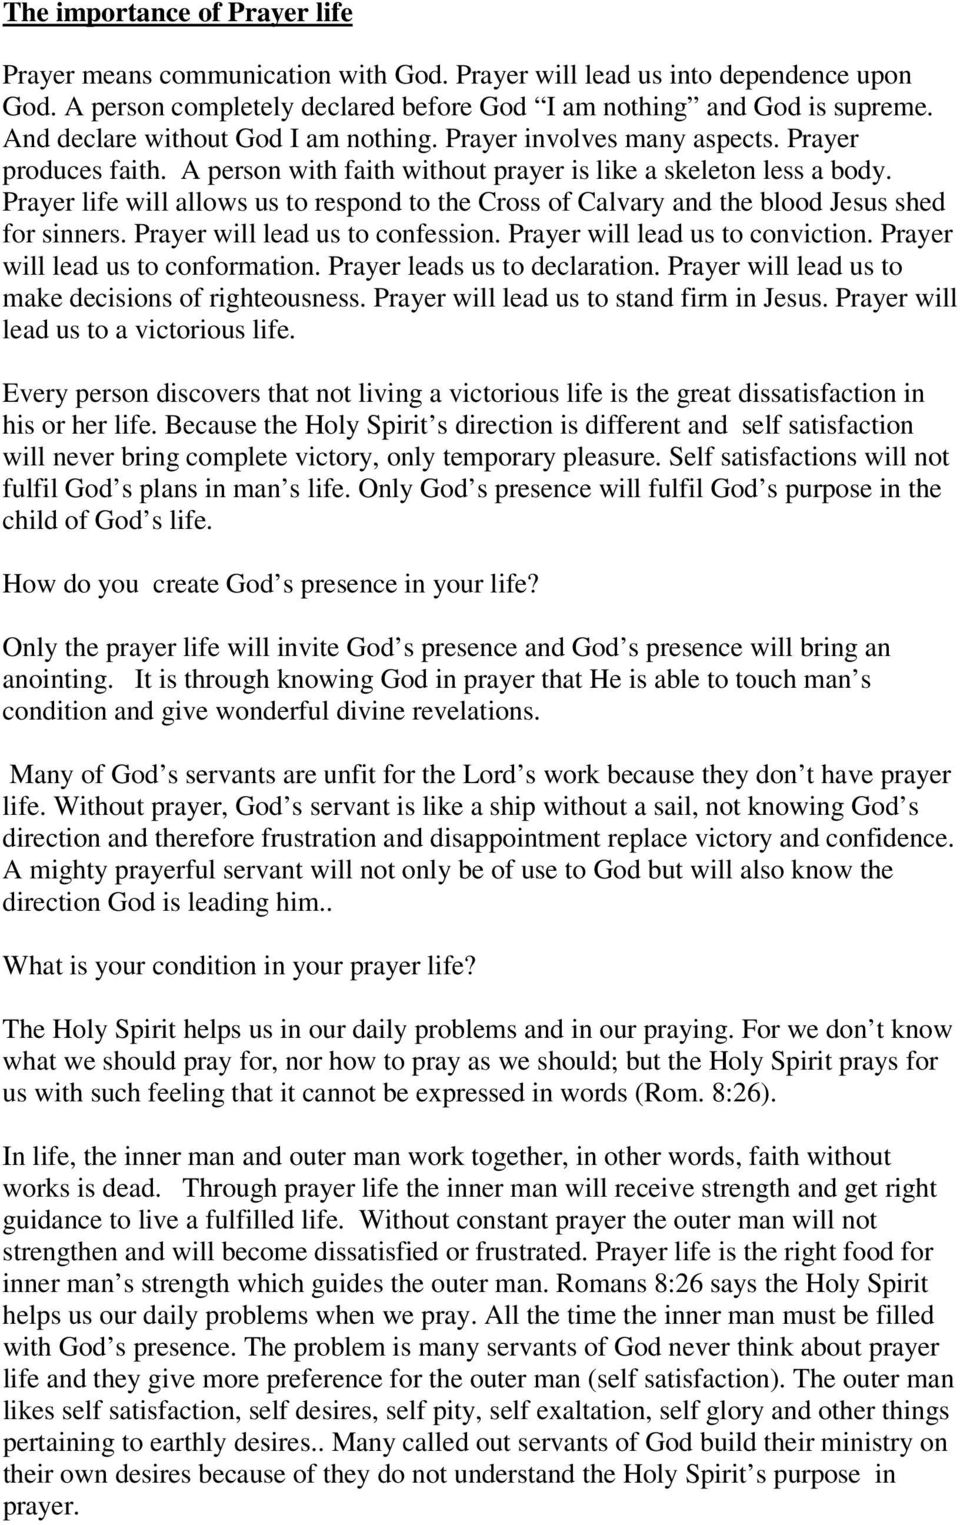 The importance of Prayer life - PDF